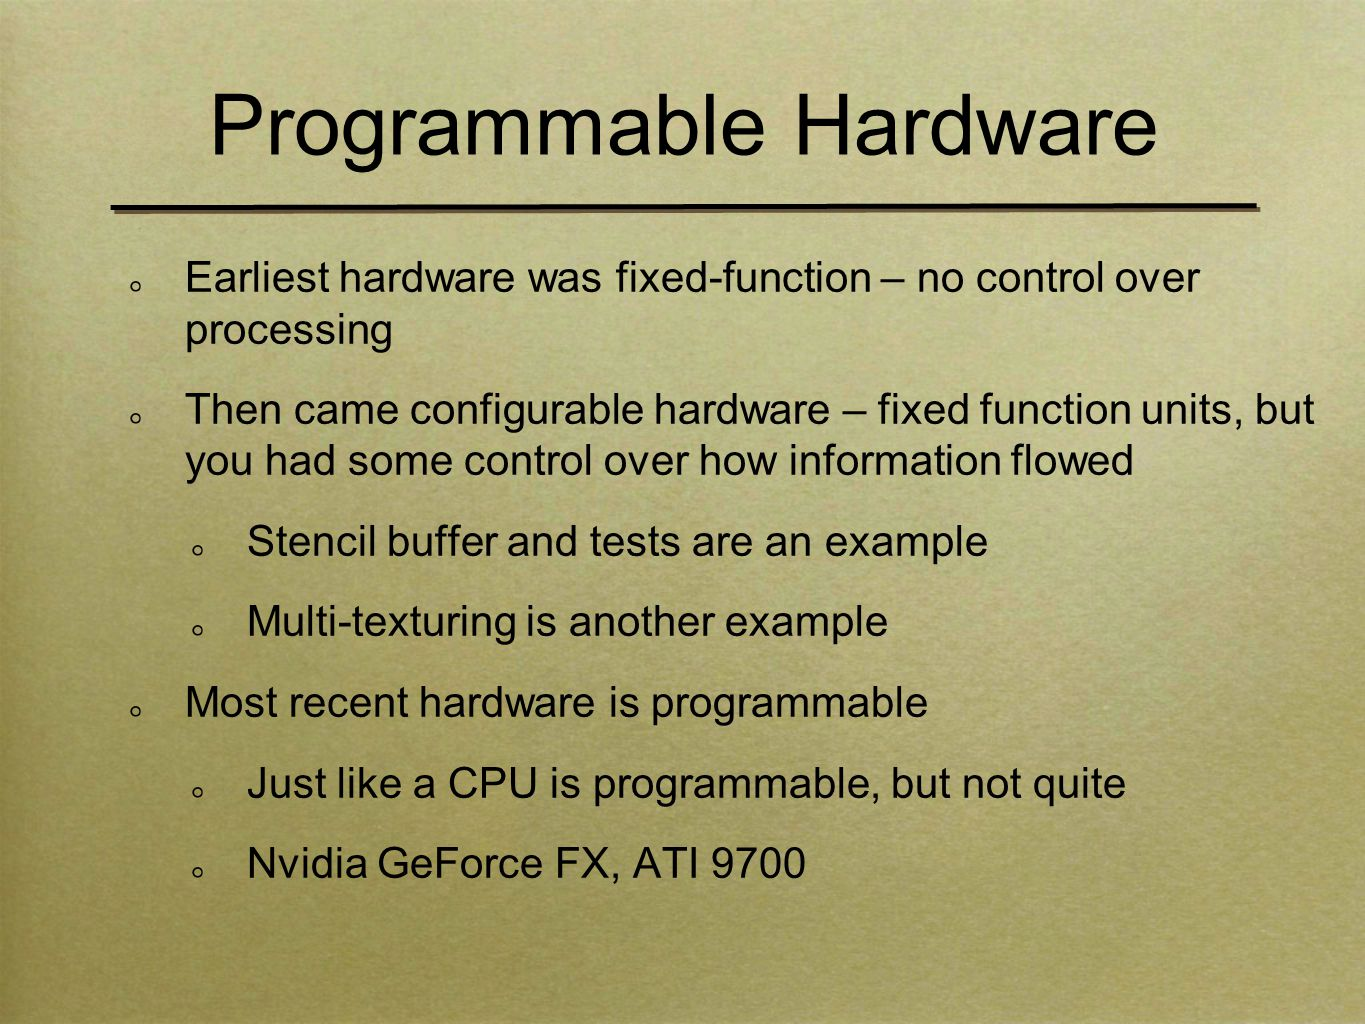 Programmable Hardware Earliest hardware was fixed-function – no control over processing Then came configurable hardware – fixed function units, but you had some control over how information flowed Stencil buffer and tests are an example Multi-texturing is another example Most recent hardware is programmable Just like a CPU is programmable, but not quite Nvidia GeForce FX, ATI 9700